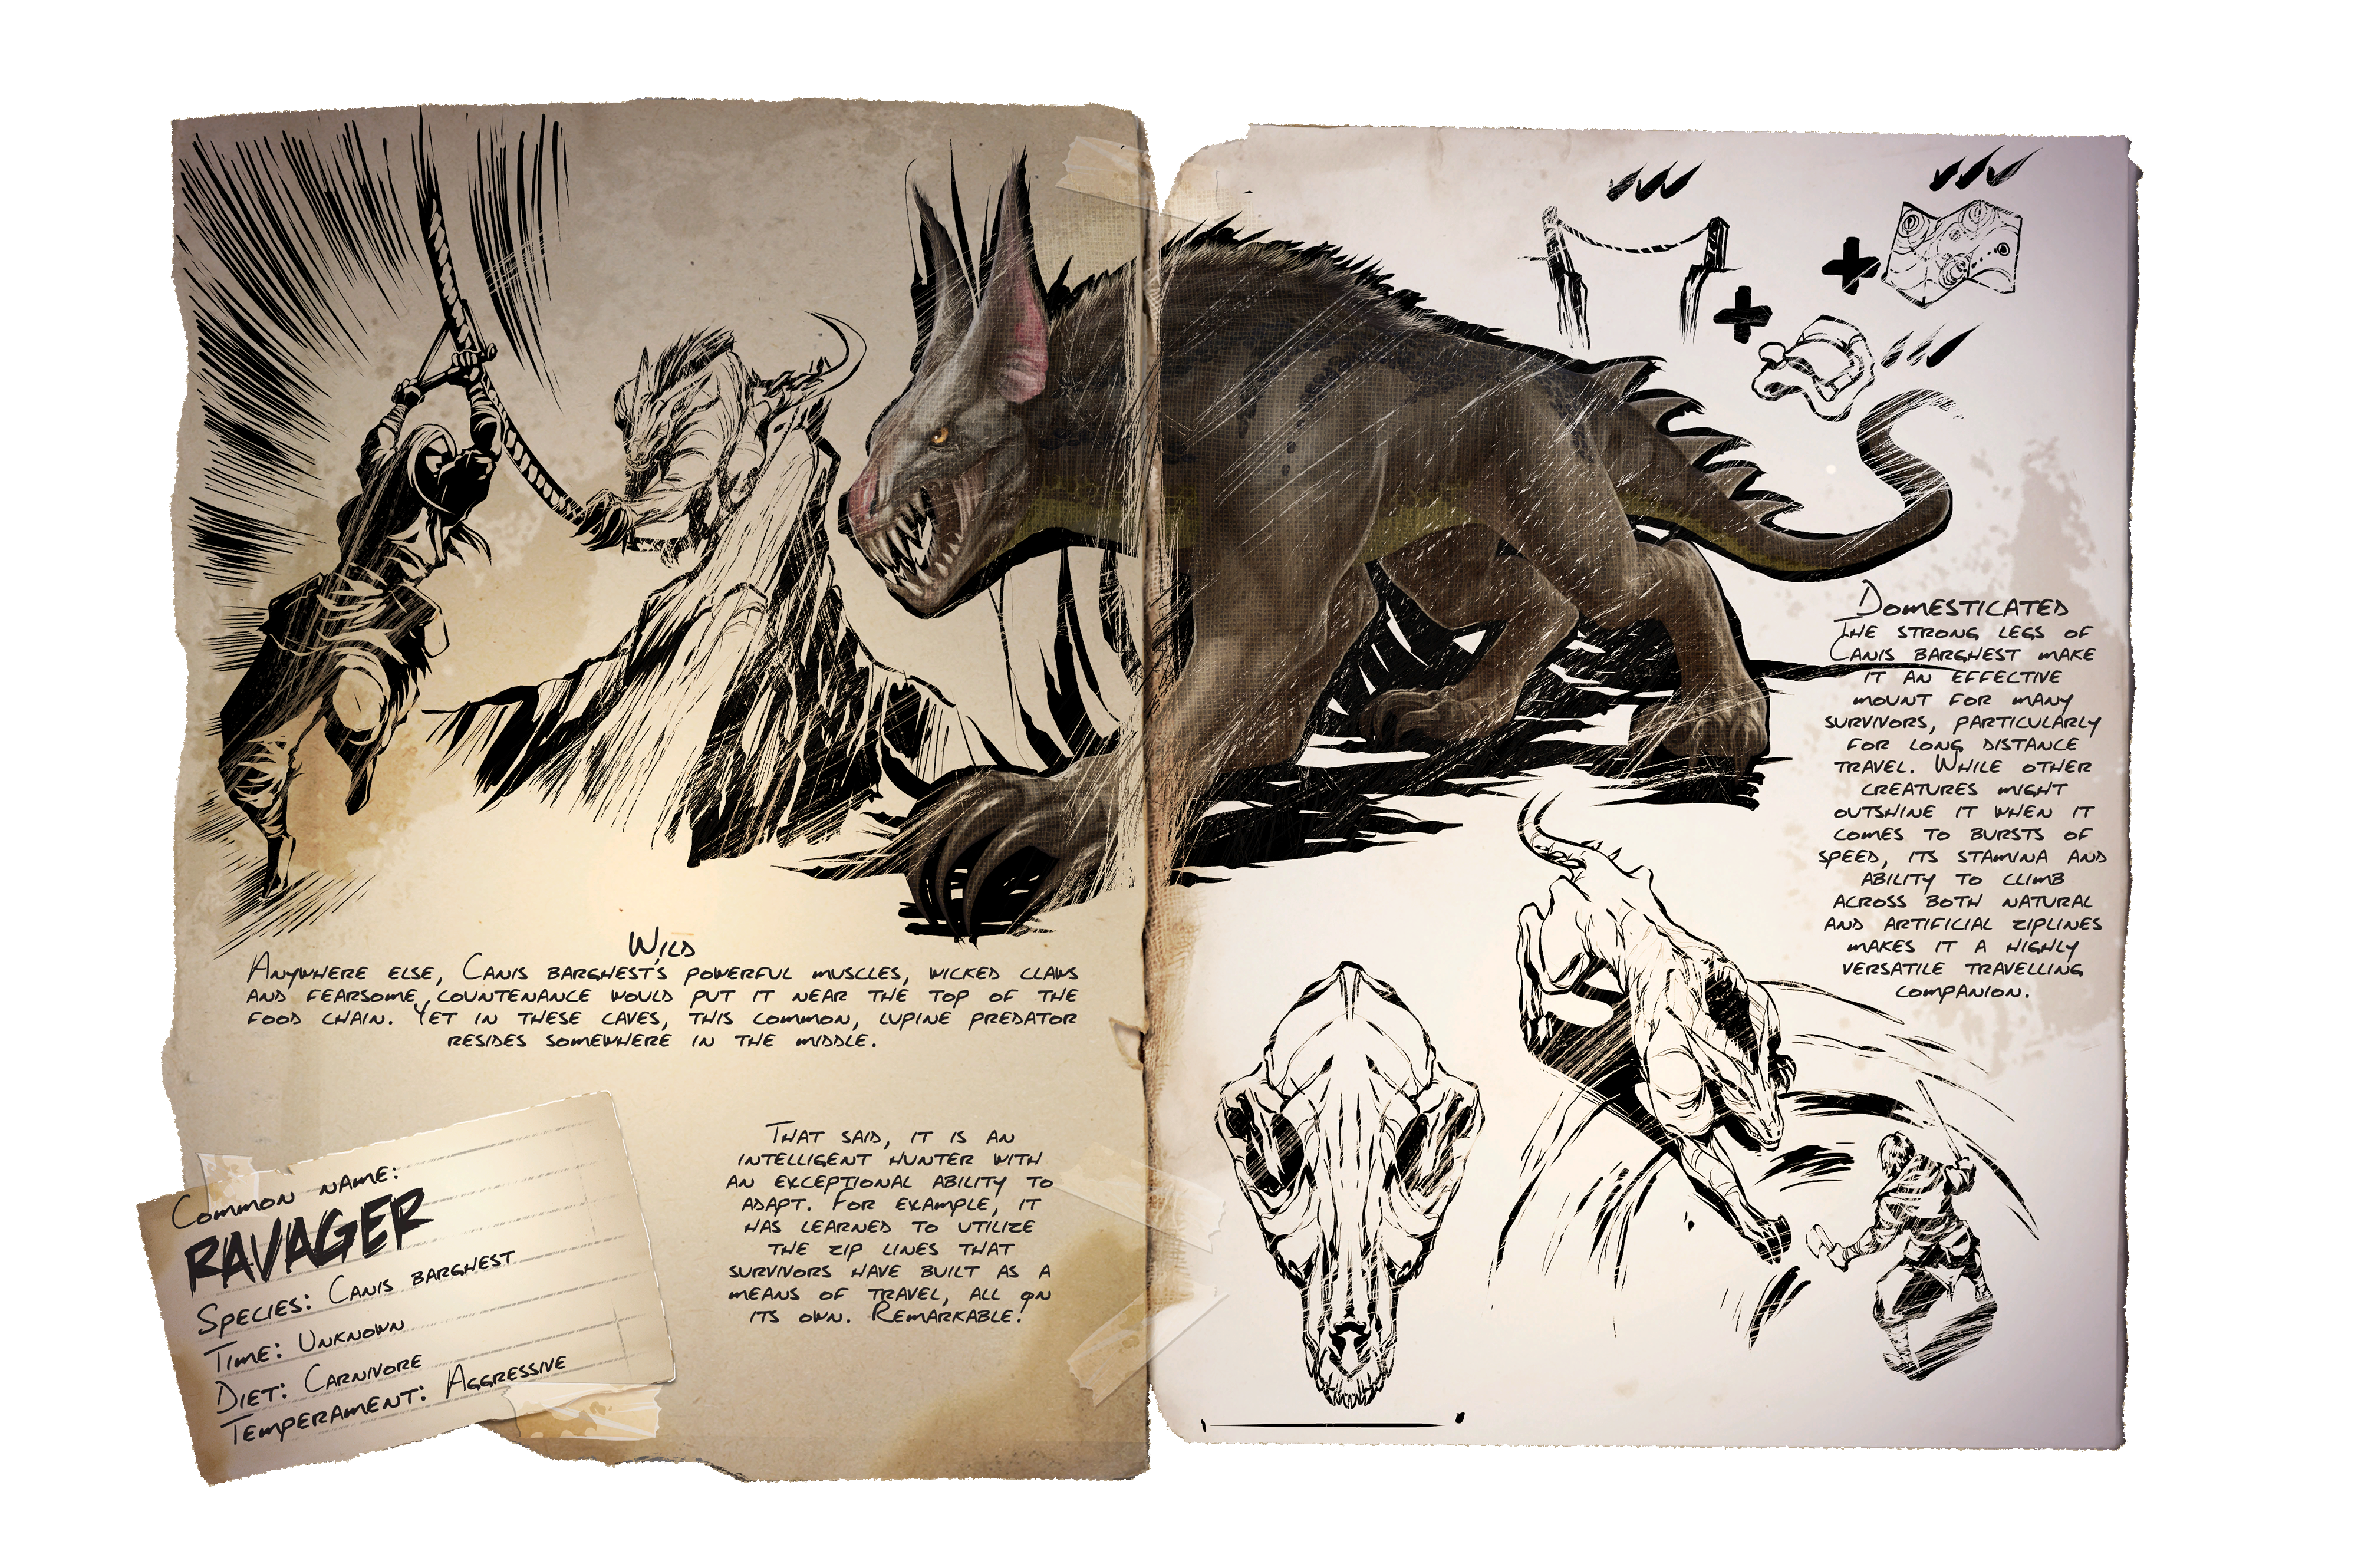 Dino Dossier: Ravager